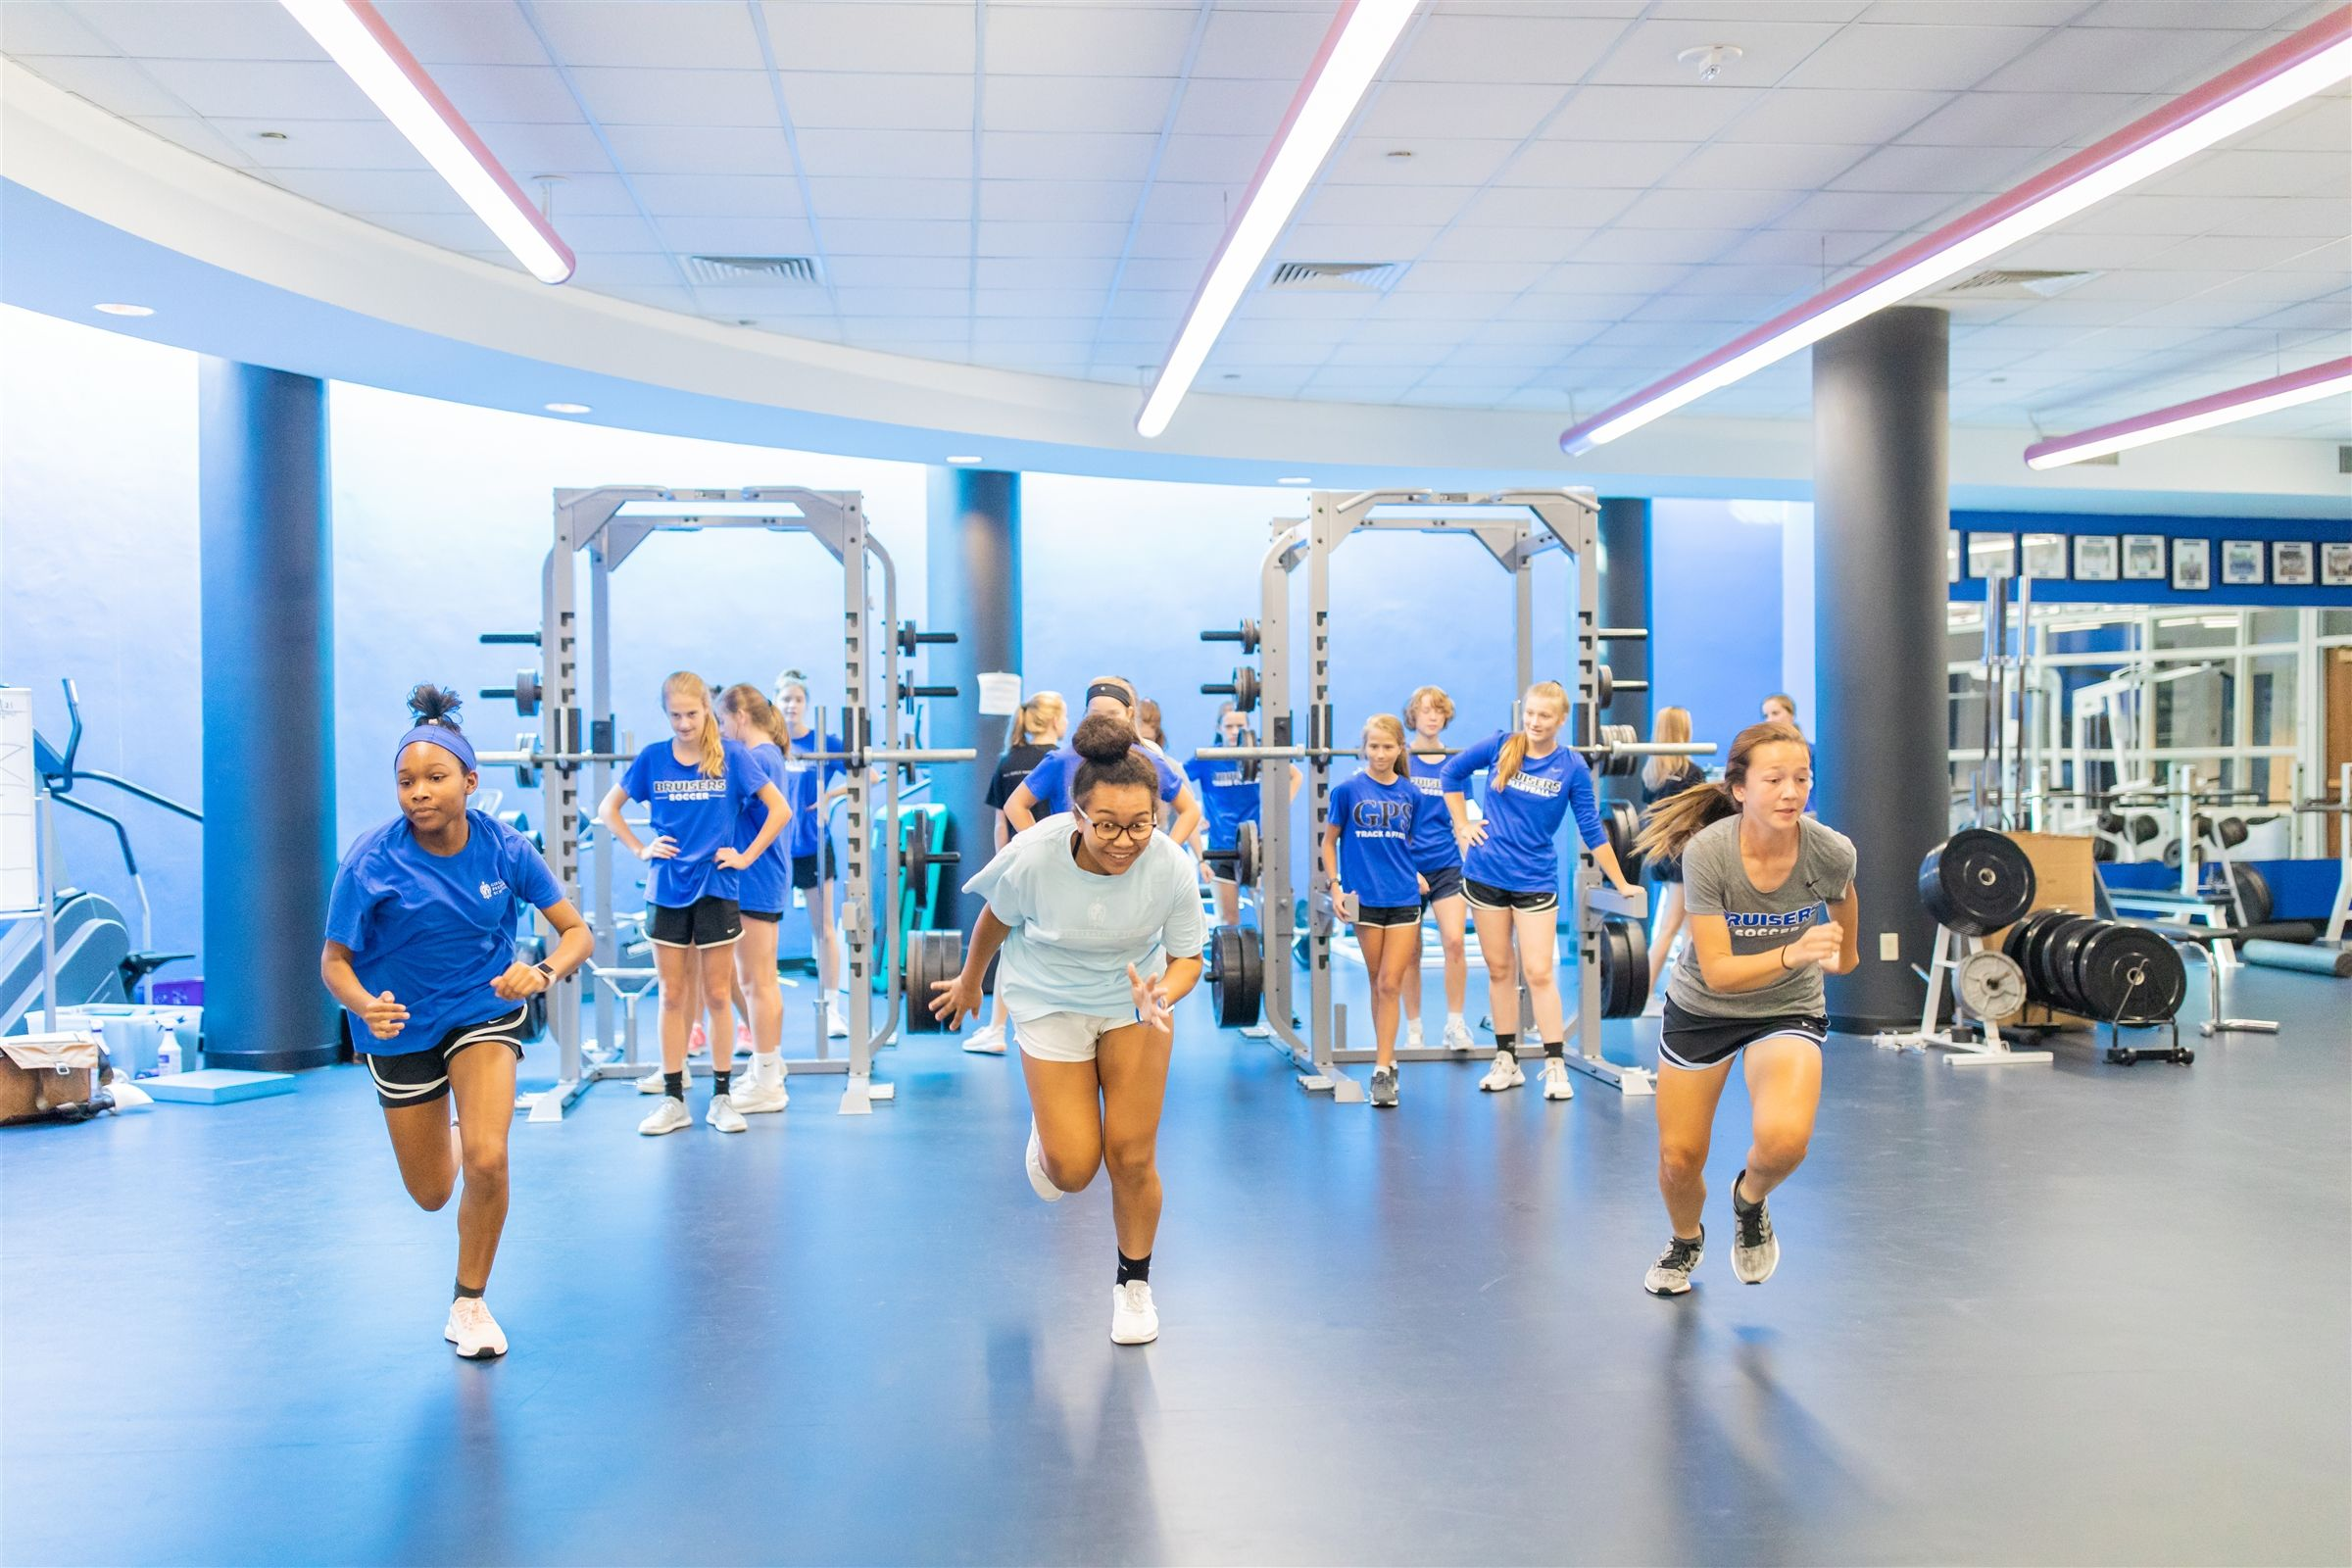 Our strength and conditioning program is the only all-female program in the Chattanooga area with two nationally certified coaches.